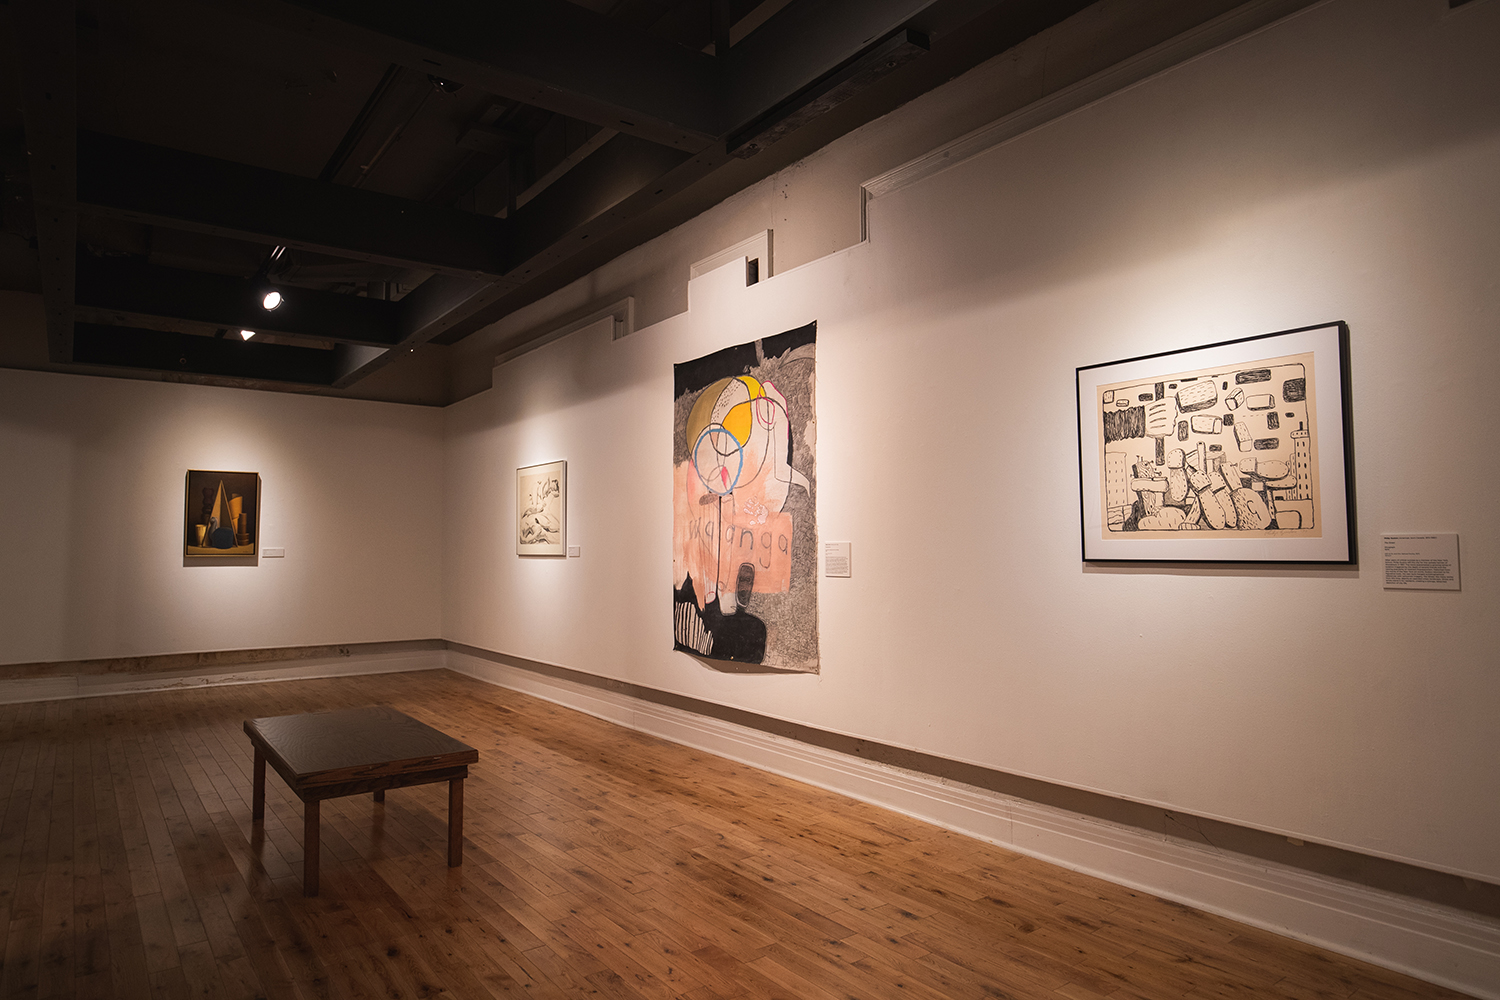 A Question of When, displayed at the Pensacola Museum of Art, features work across a multitude of mediums from numerous artists, all expressing their perspectives on societal shift brought on by the COVID-19 pandemic.